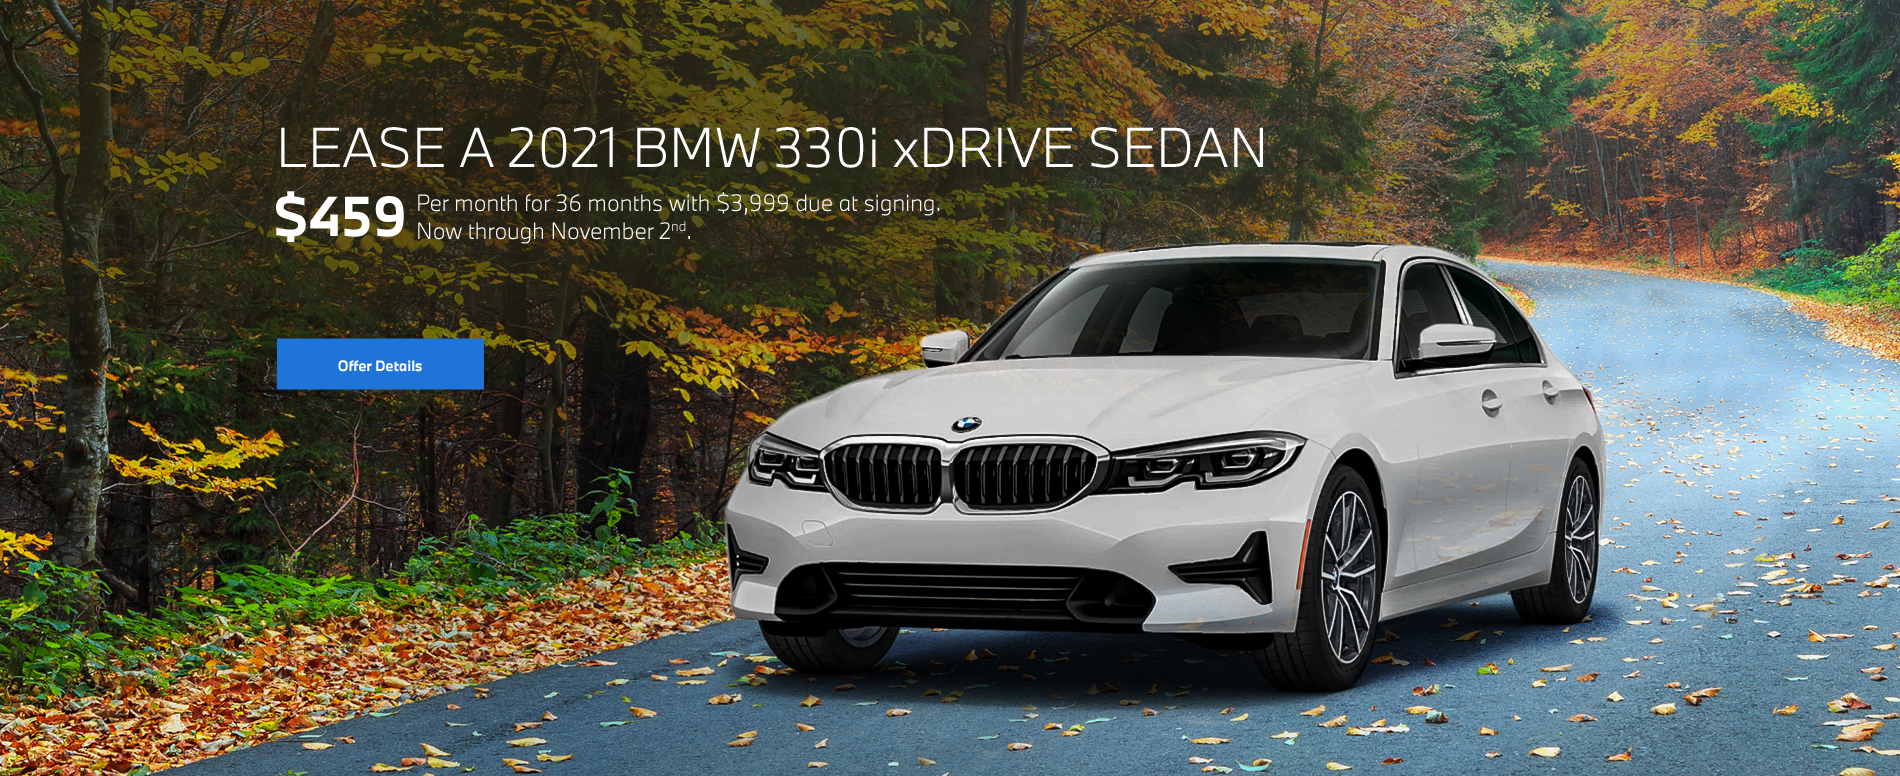 2021 330i xDrive Lease Special